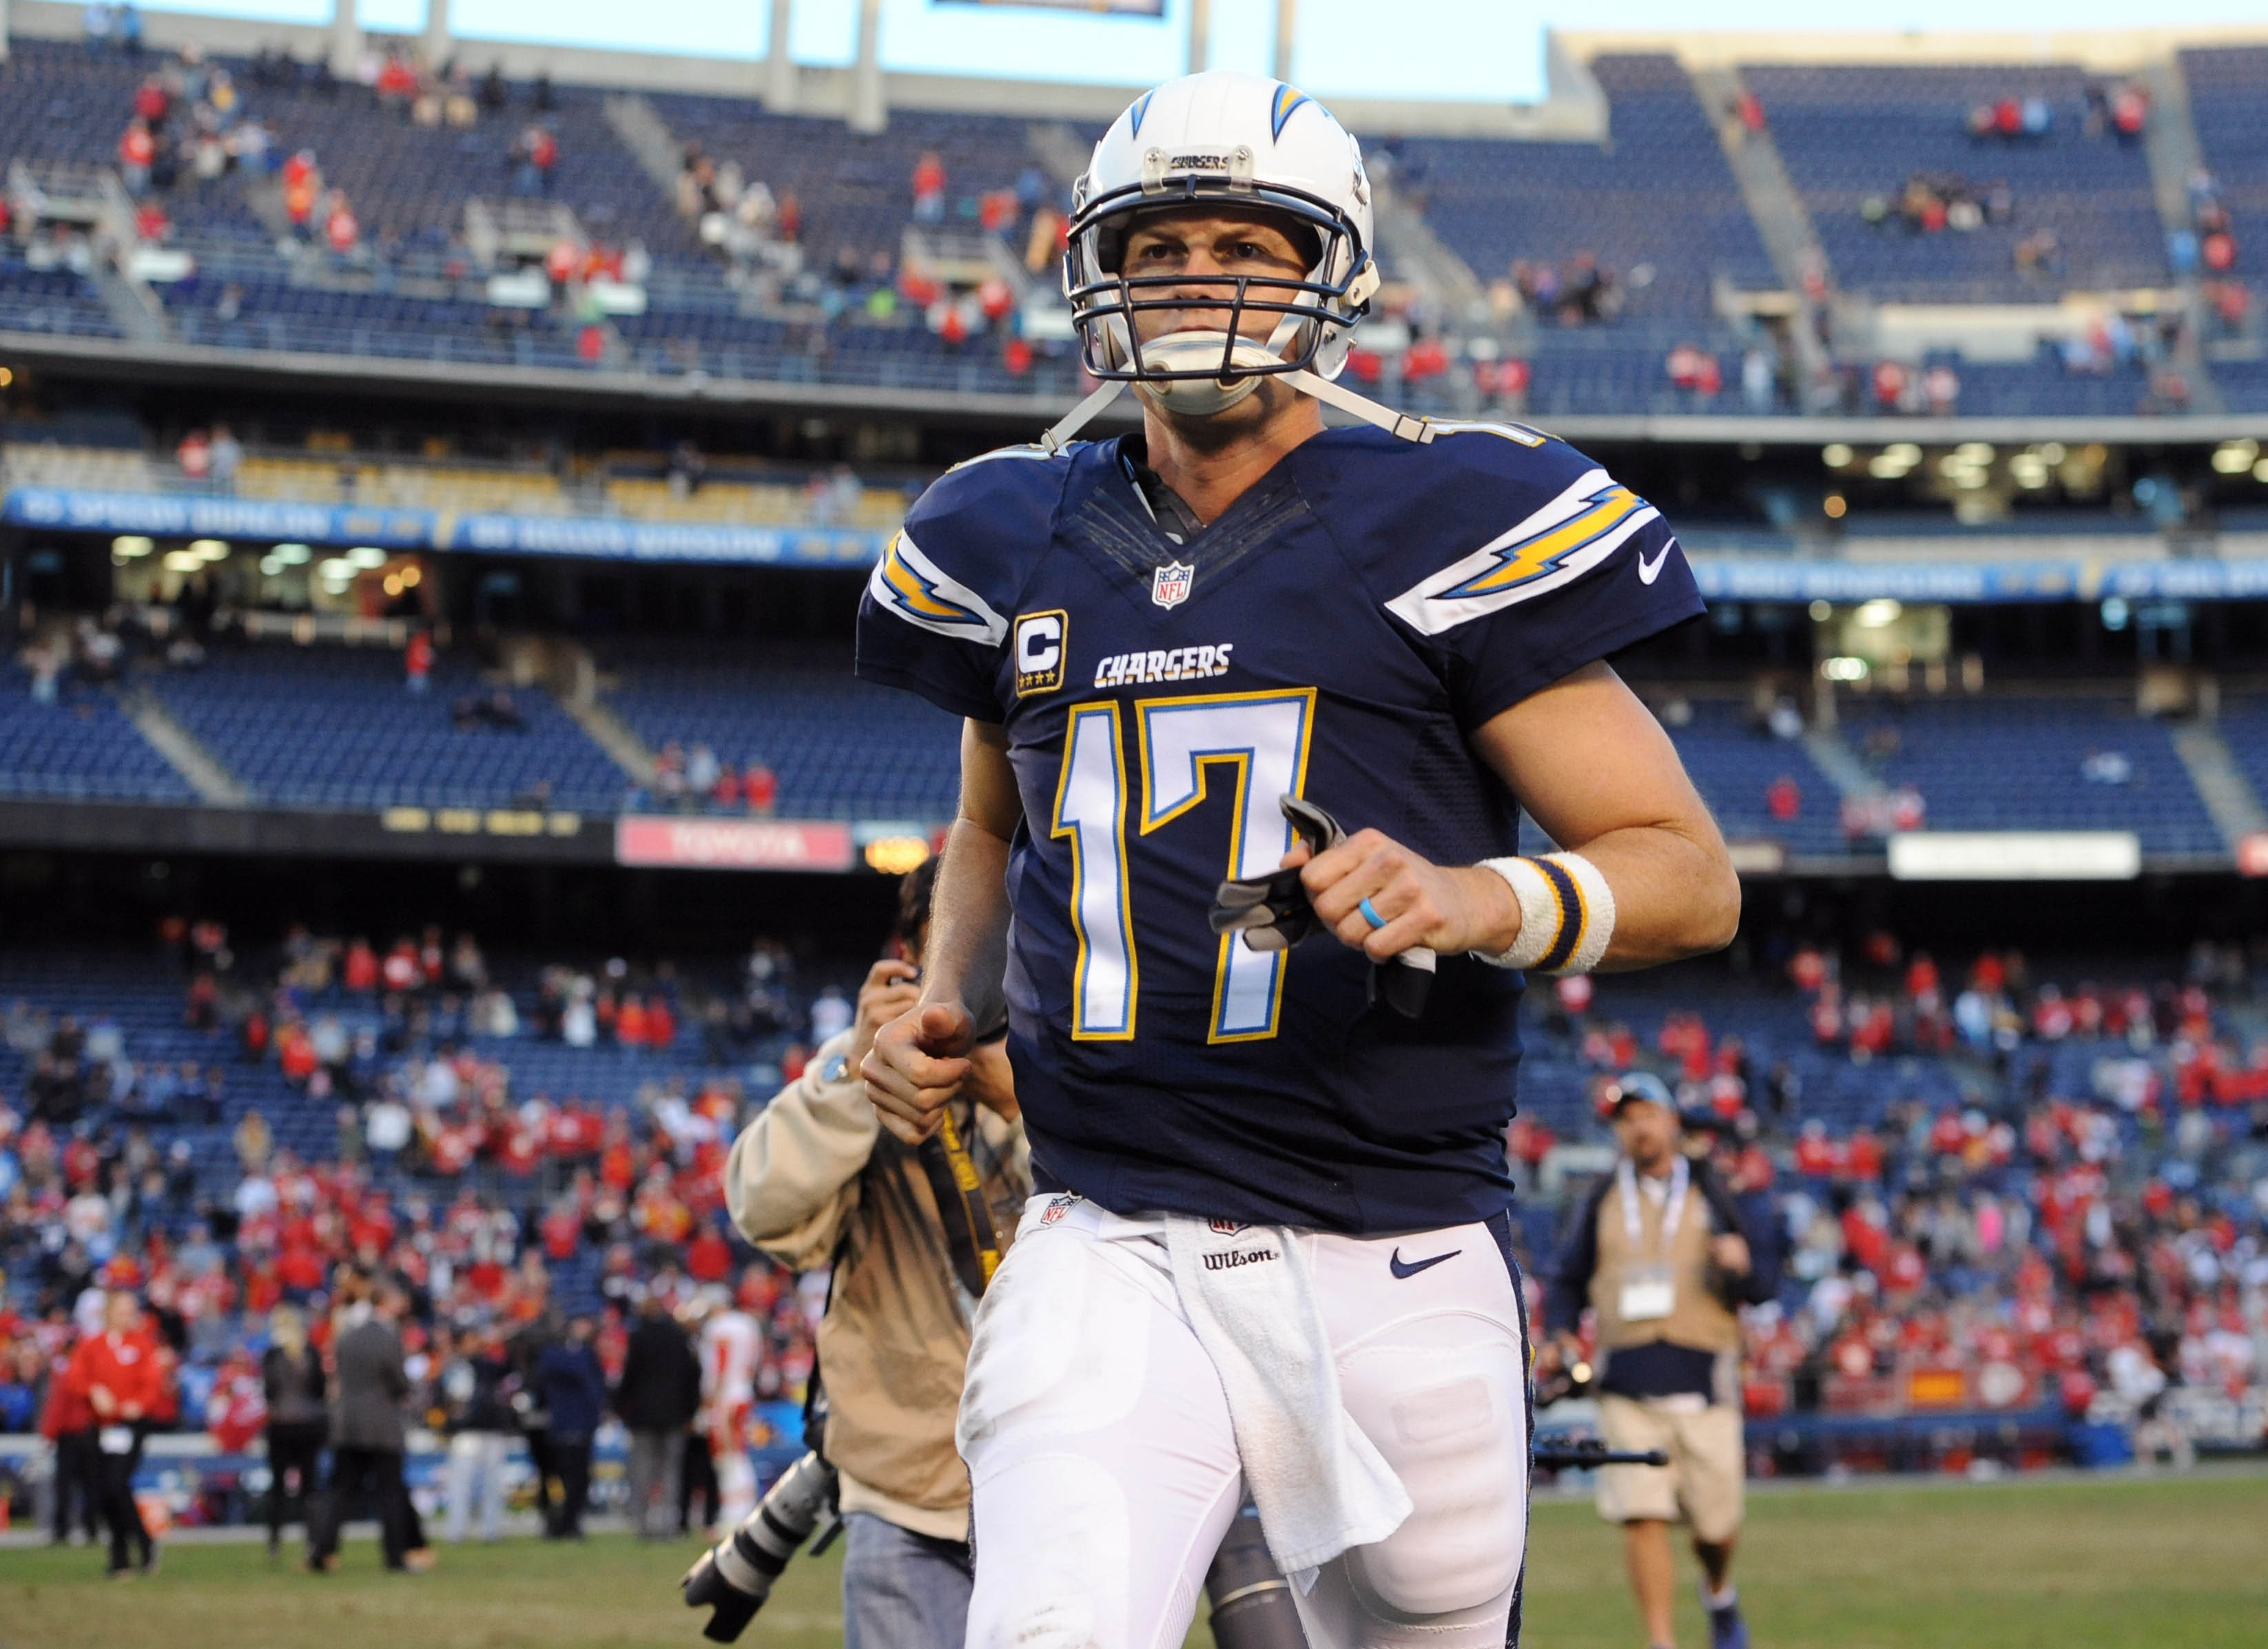 9782919-nfl-kansas-city-chiefs-at-san-diego-chargers